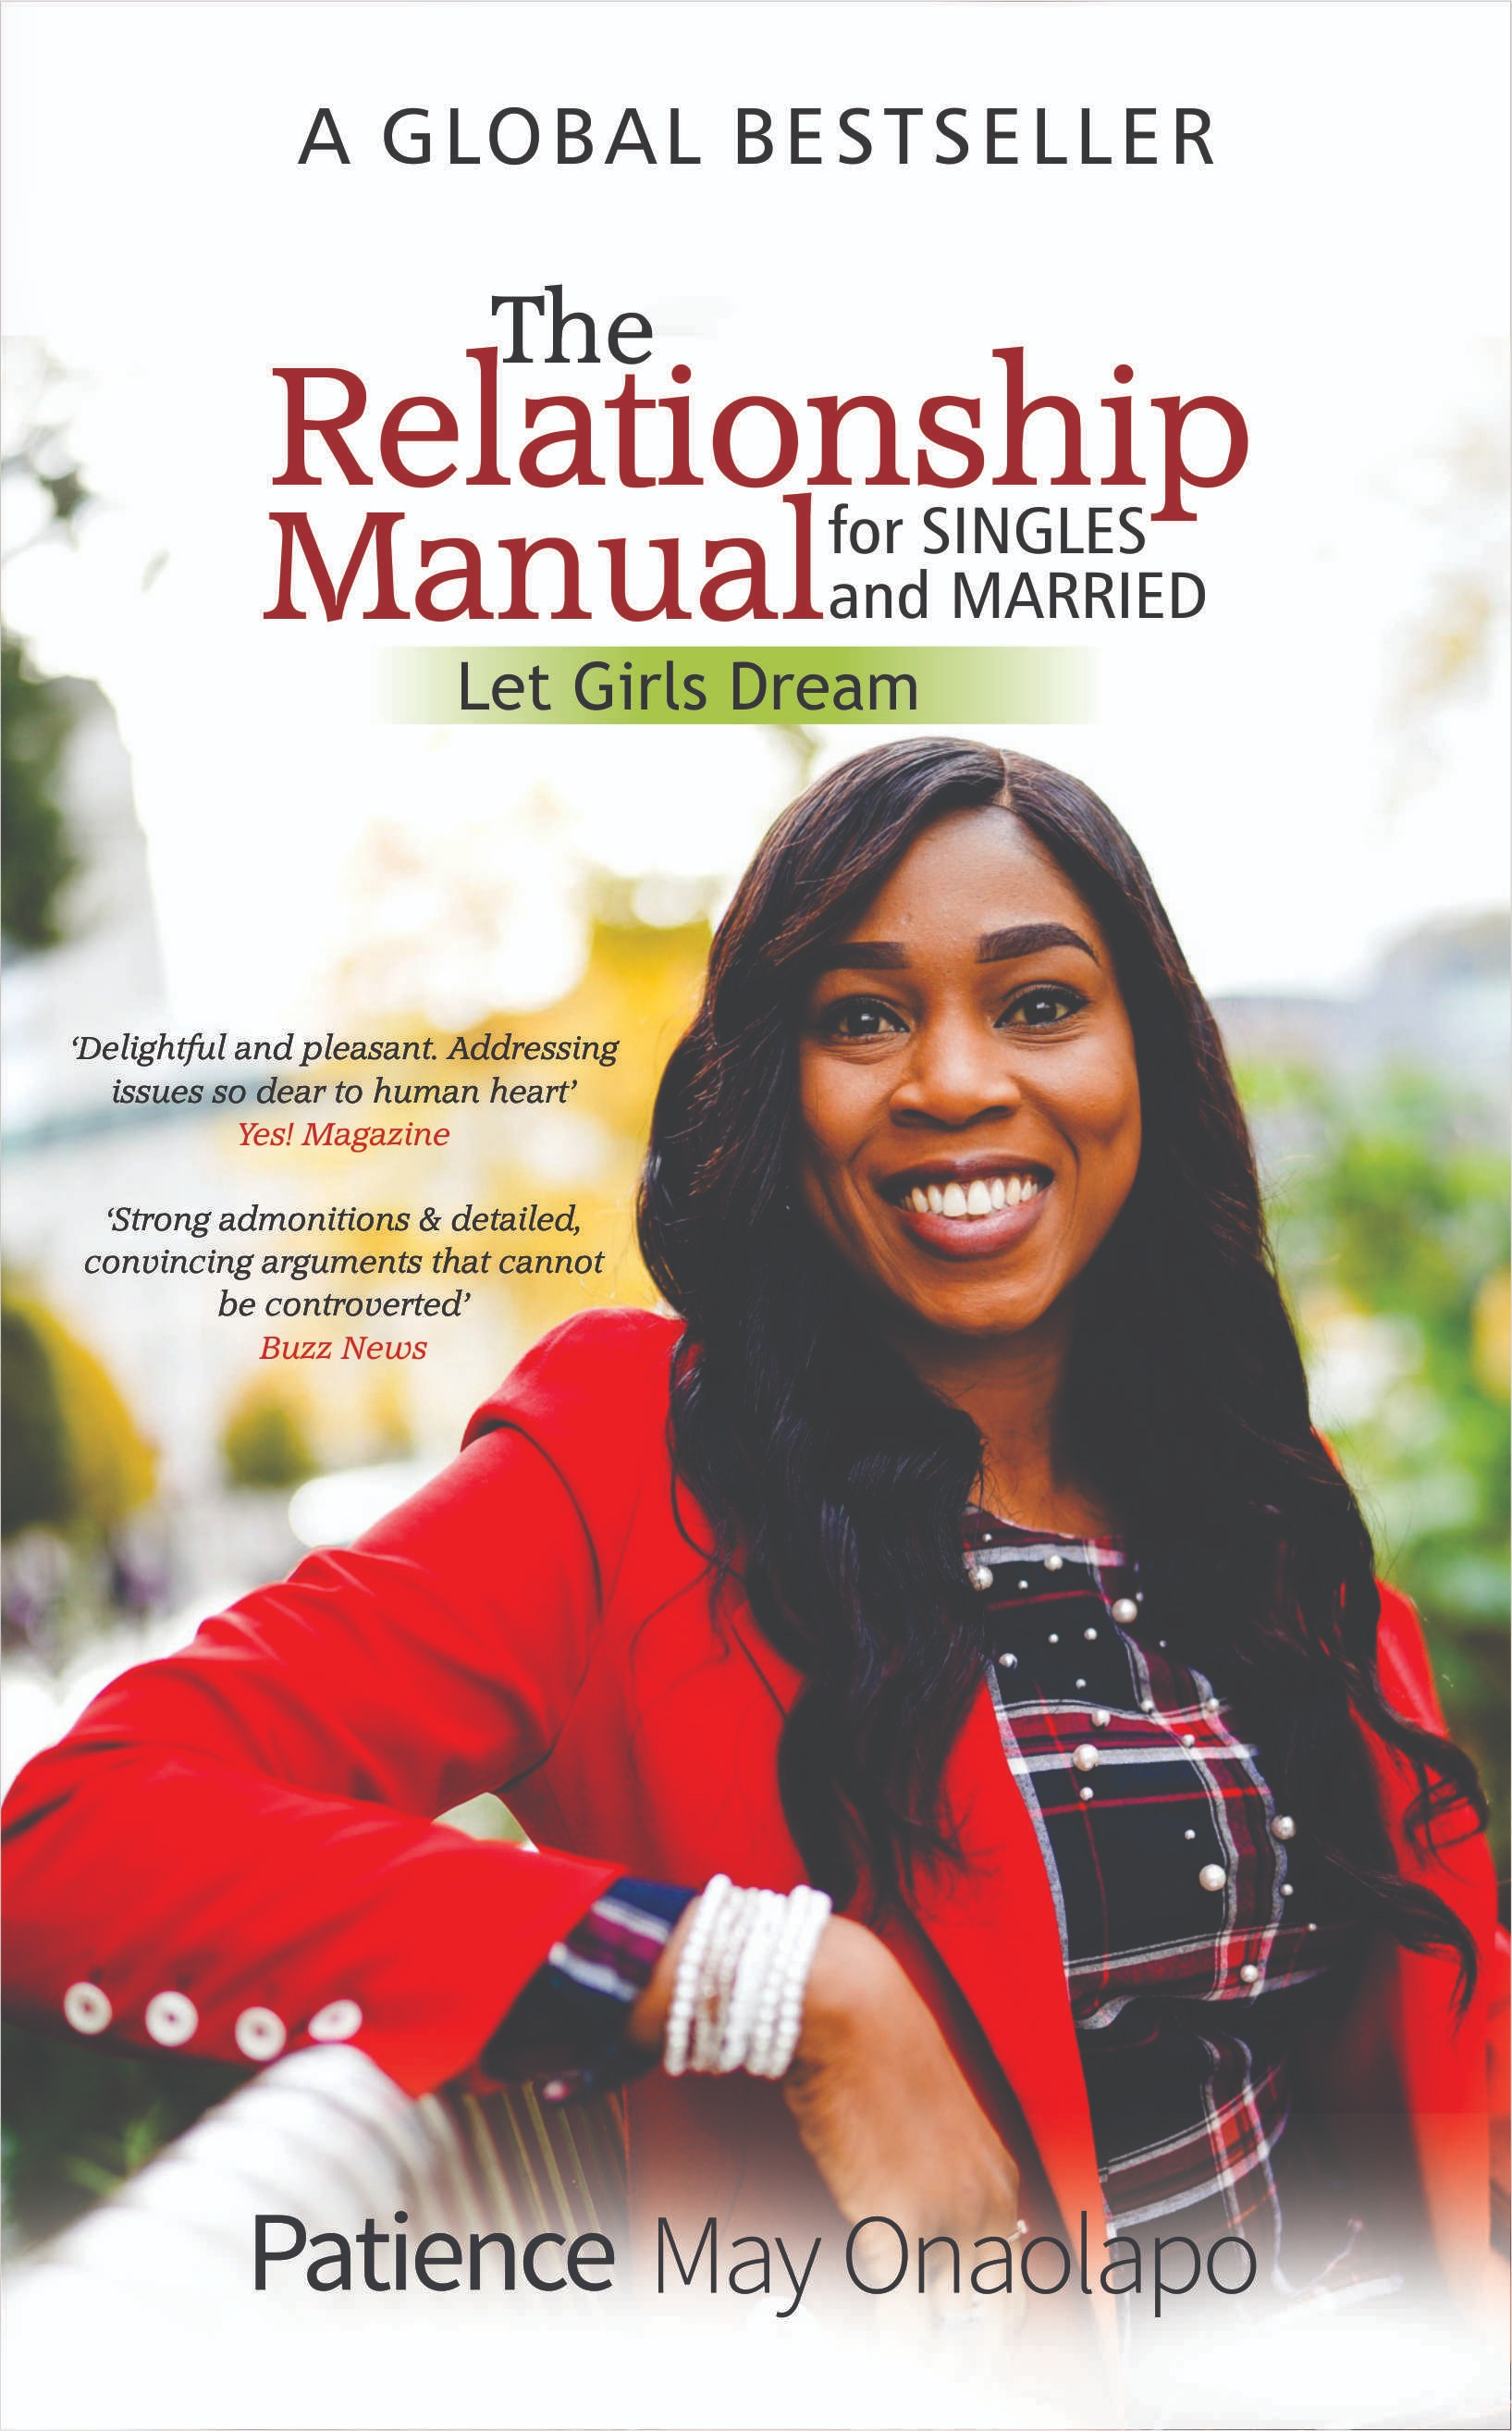 The Relationship Manual for Singles & Married - Let Girls Dream